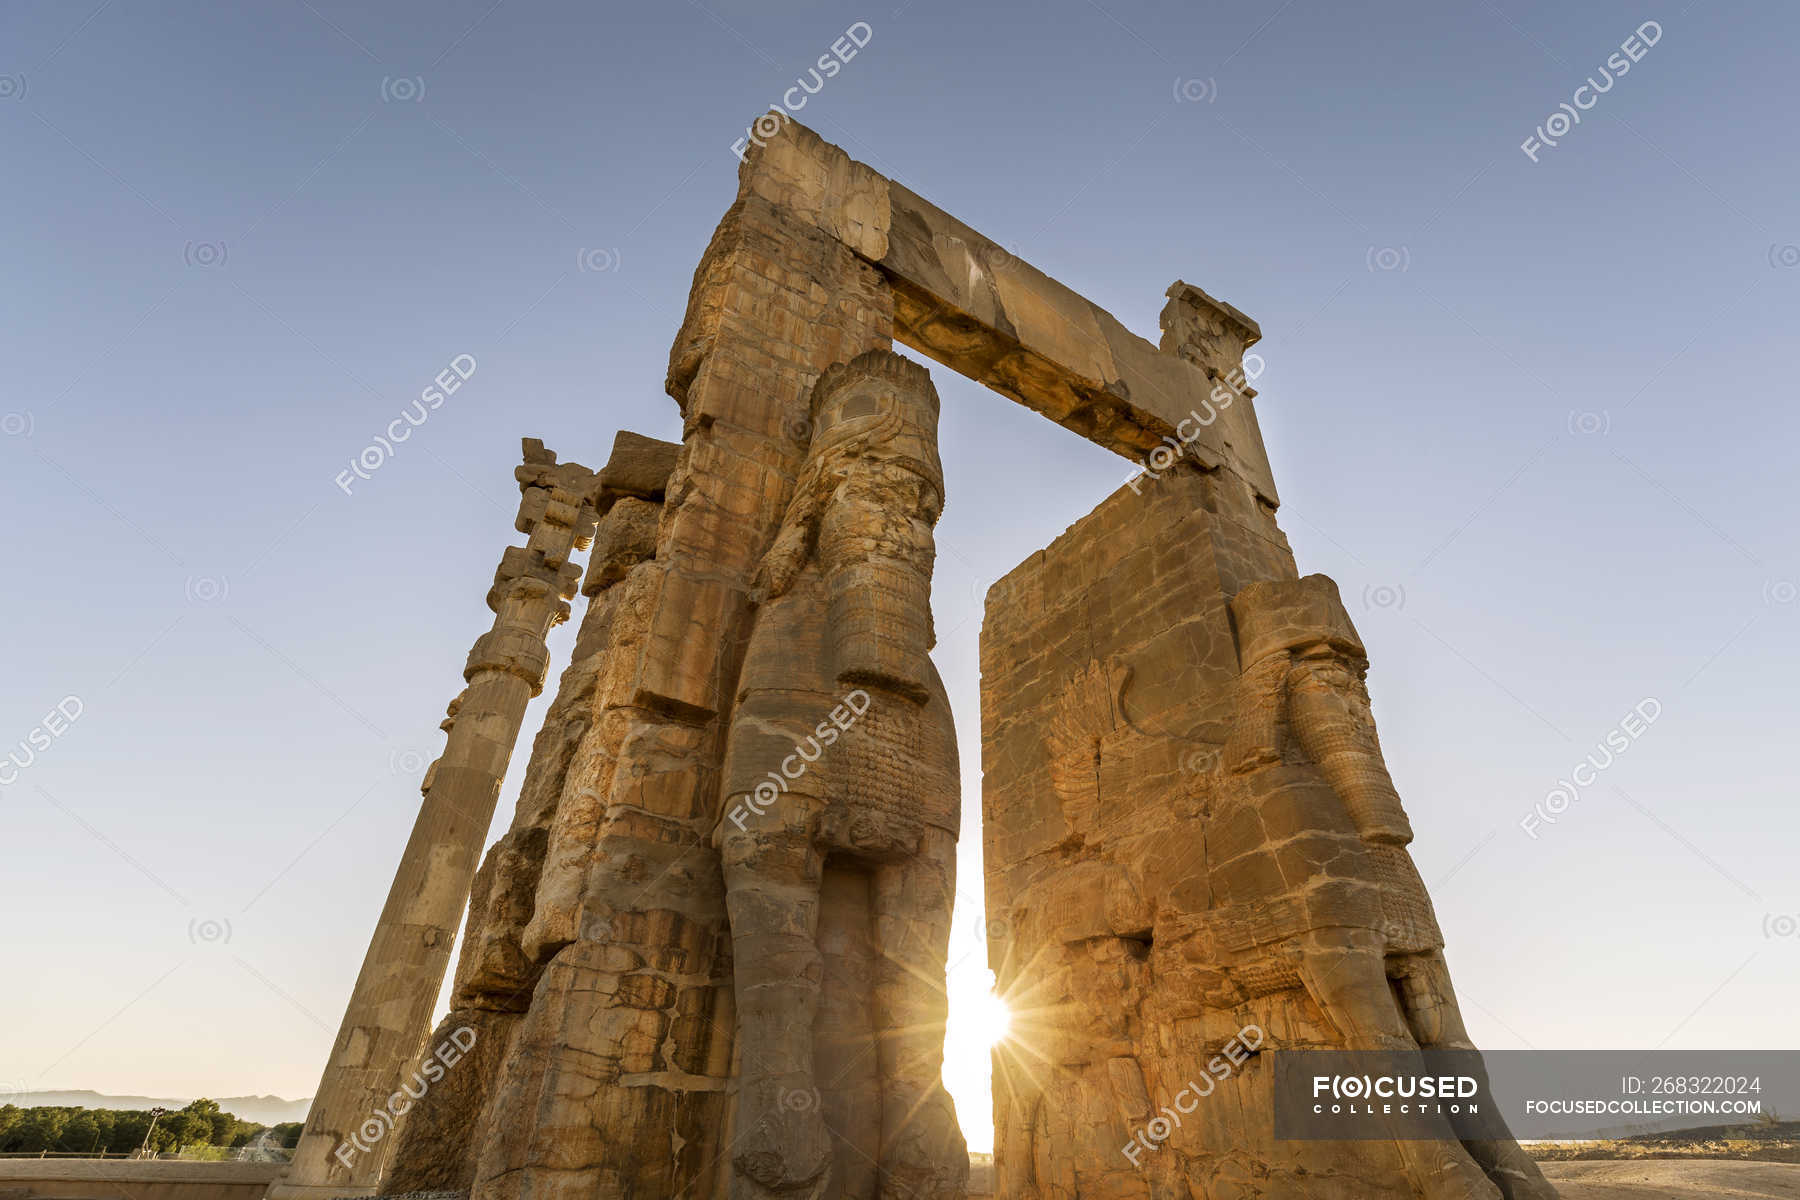 Iran Shiraz Province Persepolis Gate Of All Nations Historical Color Image Stock Photo 268322024